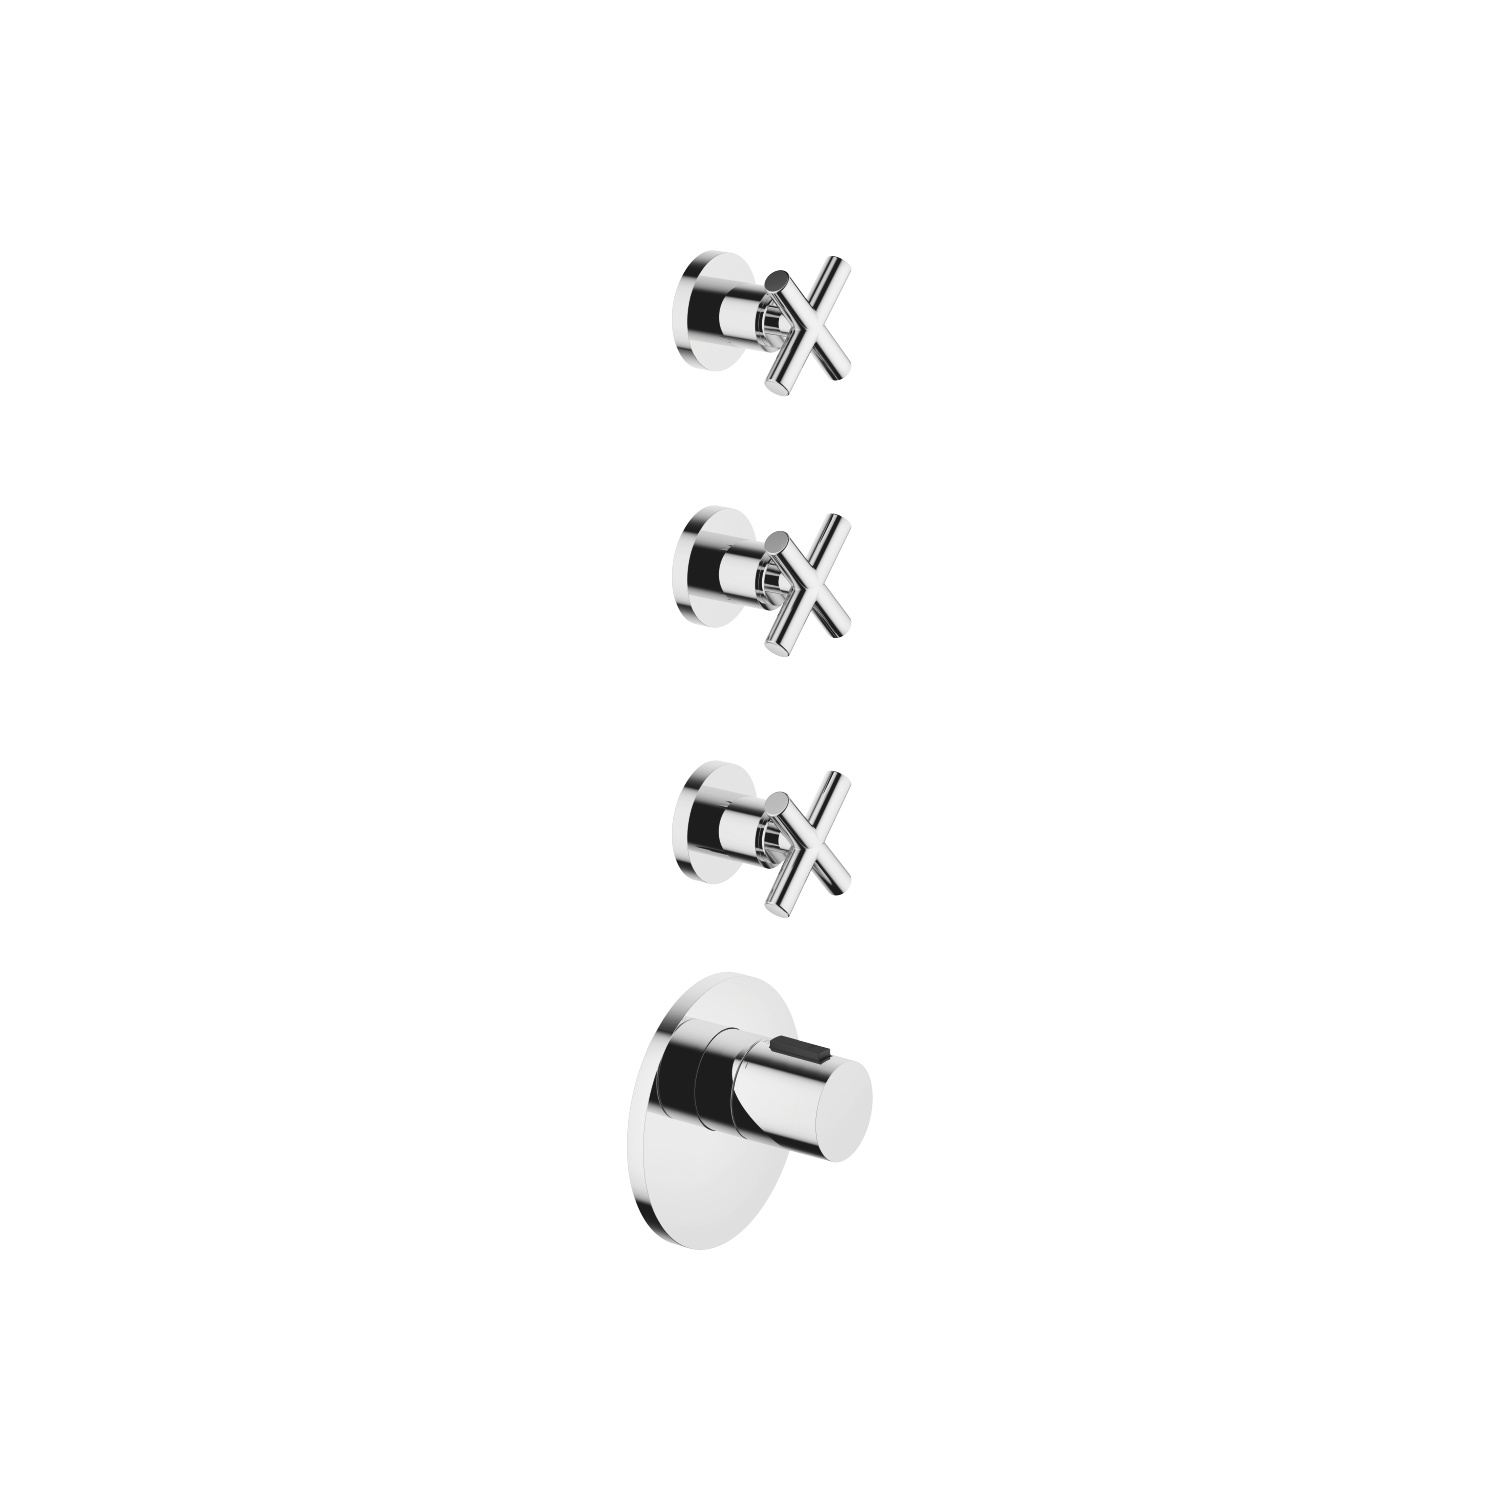 xTOOL Thermostat module with 3 valves - polished chrome